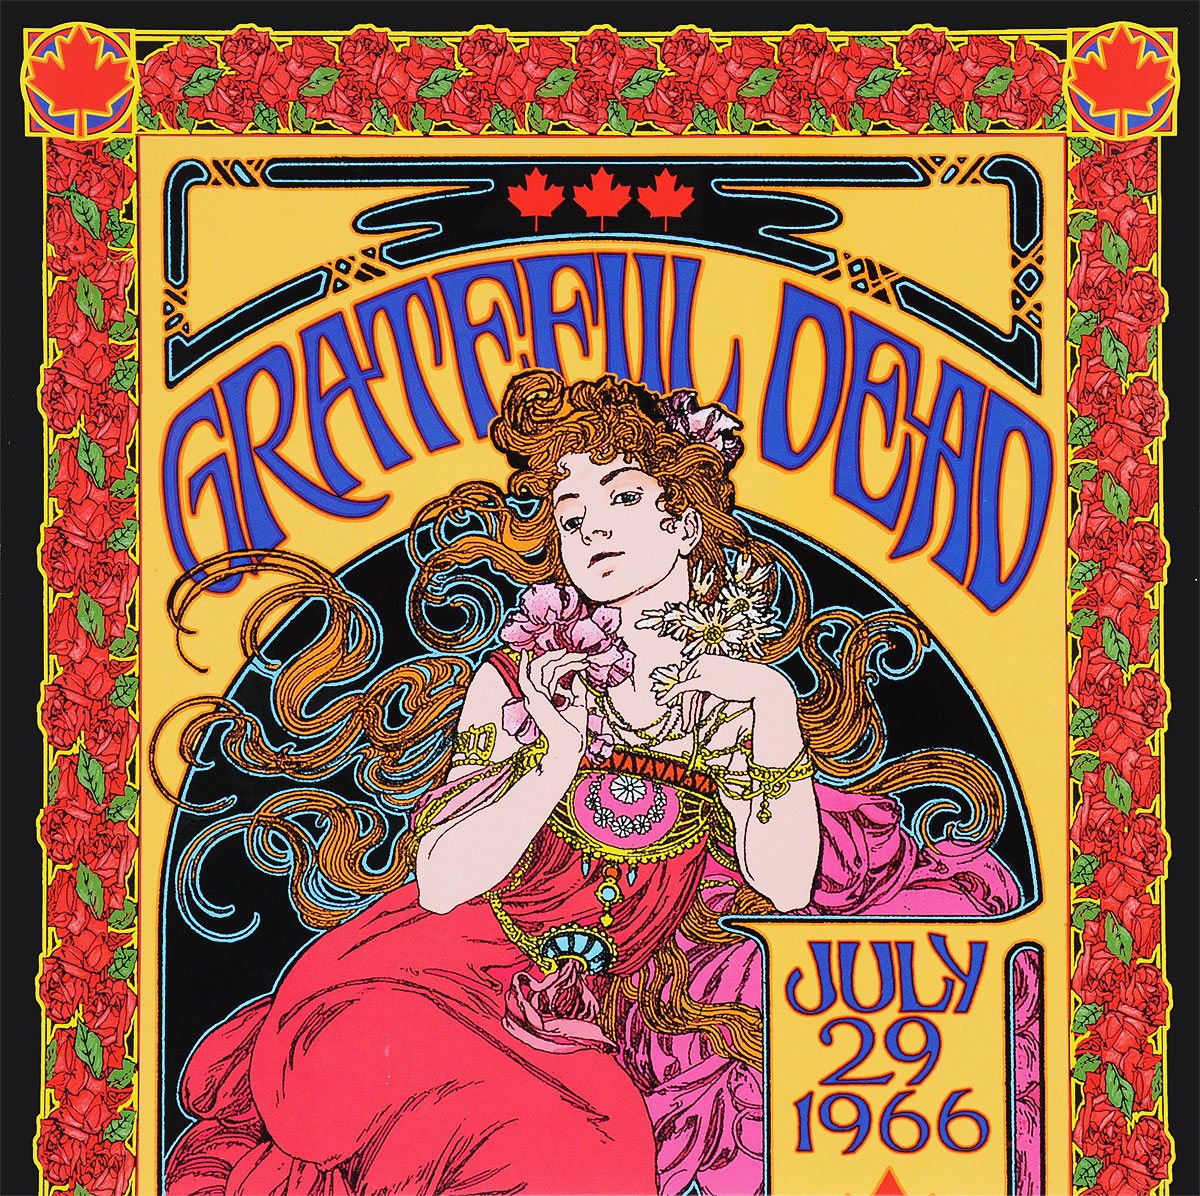 The Grateful Dead Grateful Dead. P.N.E. Garden Aud., Vancouver, Canada, July 29 1966. Limited Edition (2 LP) roxy music roxy music the studio albums limited edition 8 lp